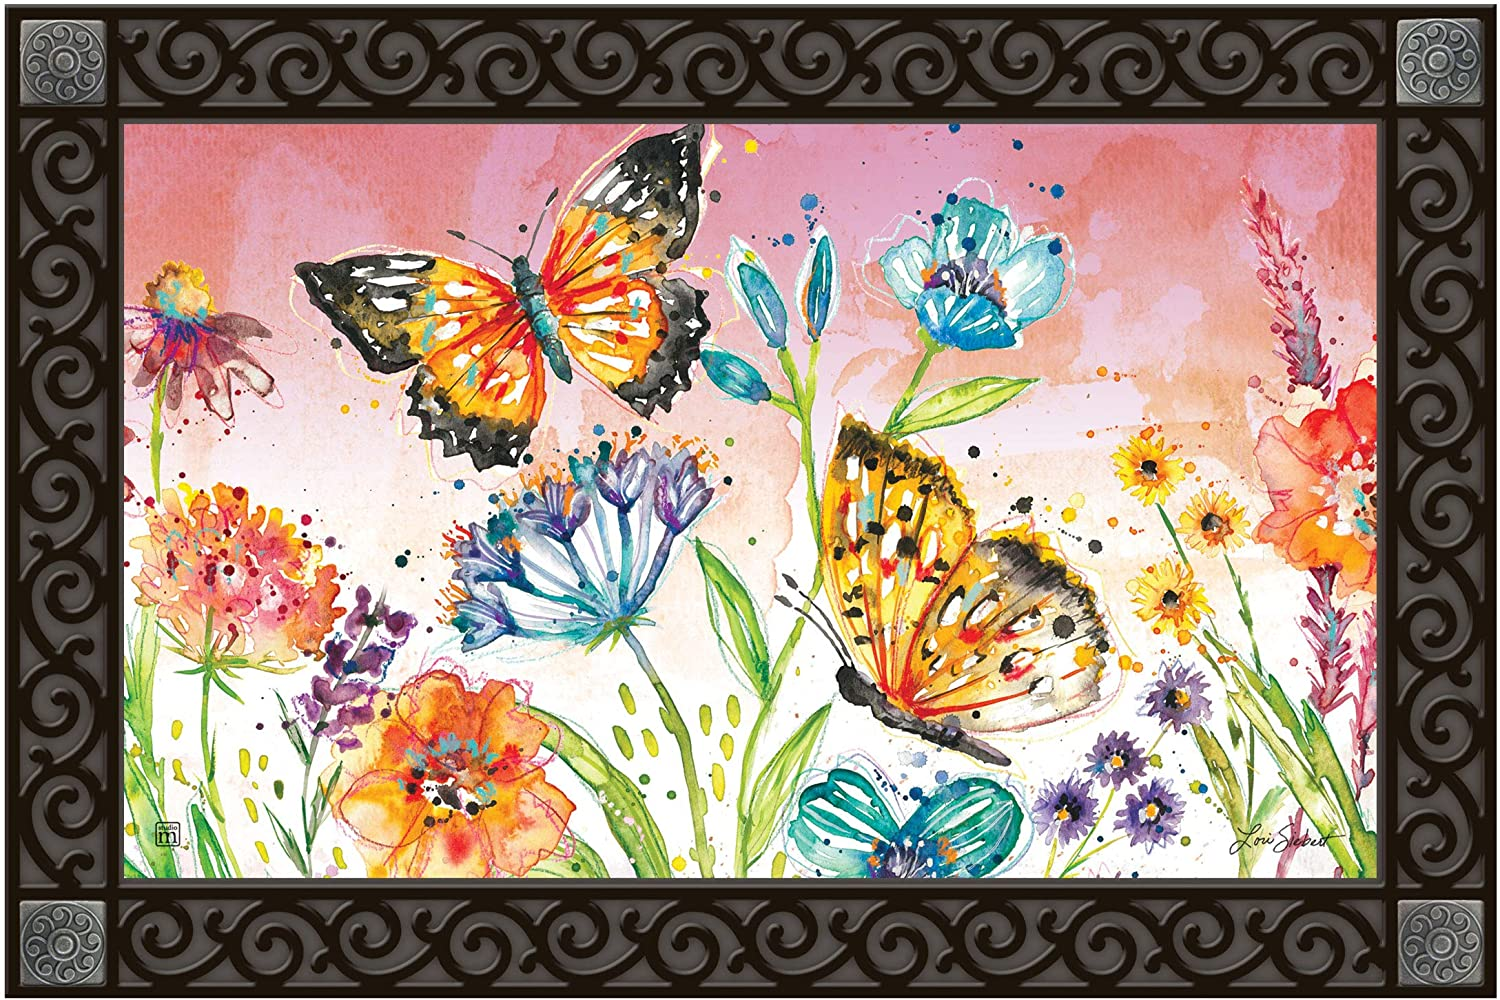 Studio M MatMates Butterfly Blossoms Decorative Floor Mat Indoor or Outdoor Doormat with Eco-Friendly Recycled Rubber Backing, 18 x 30 Inches